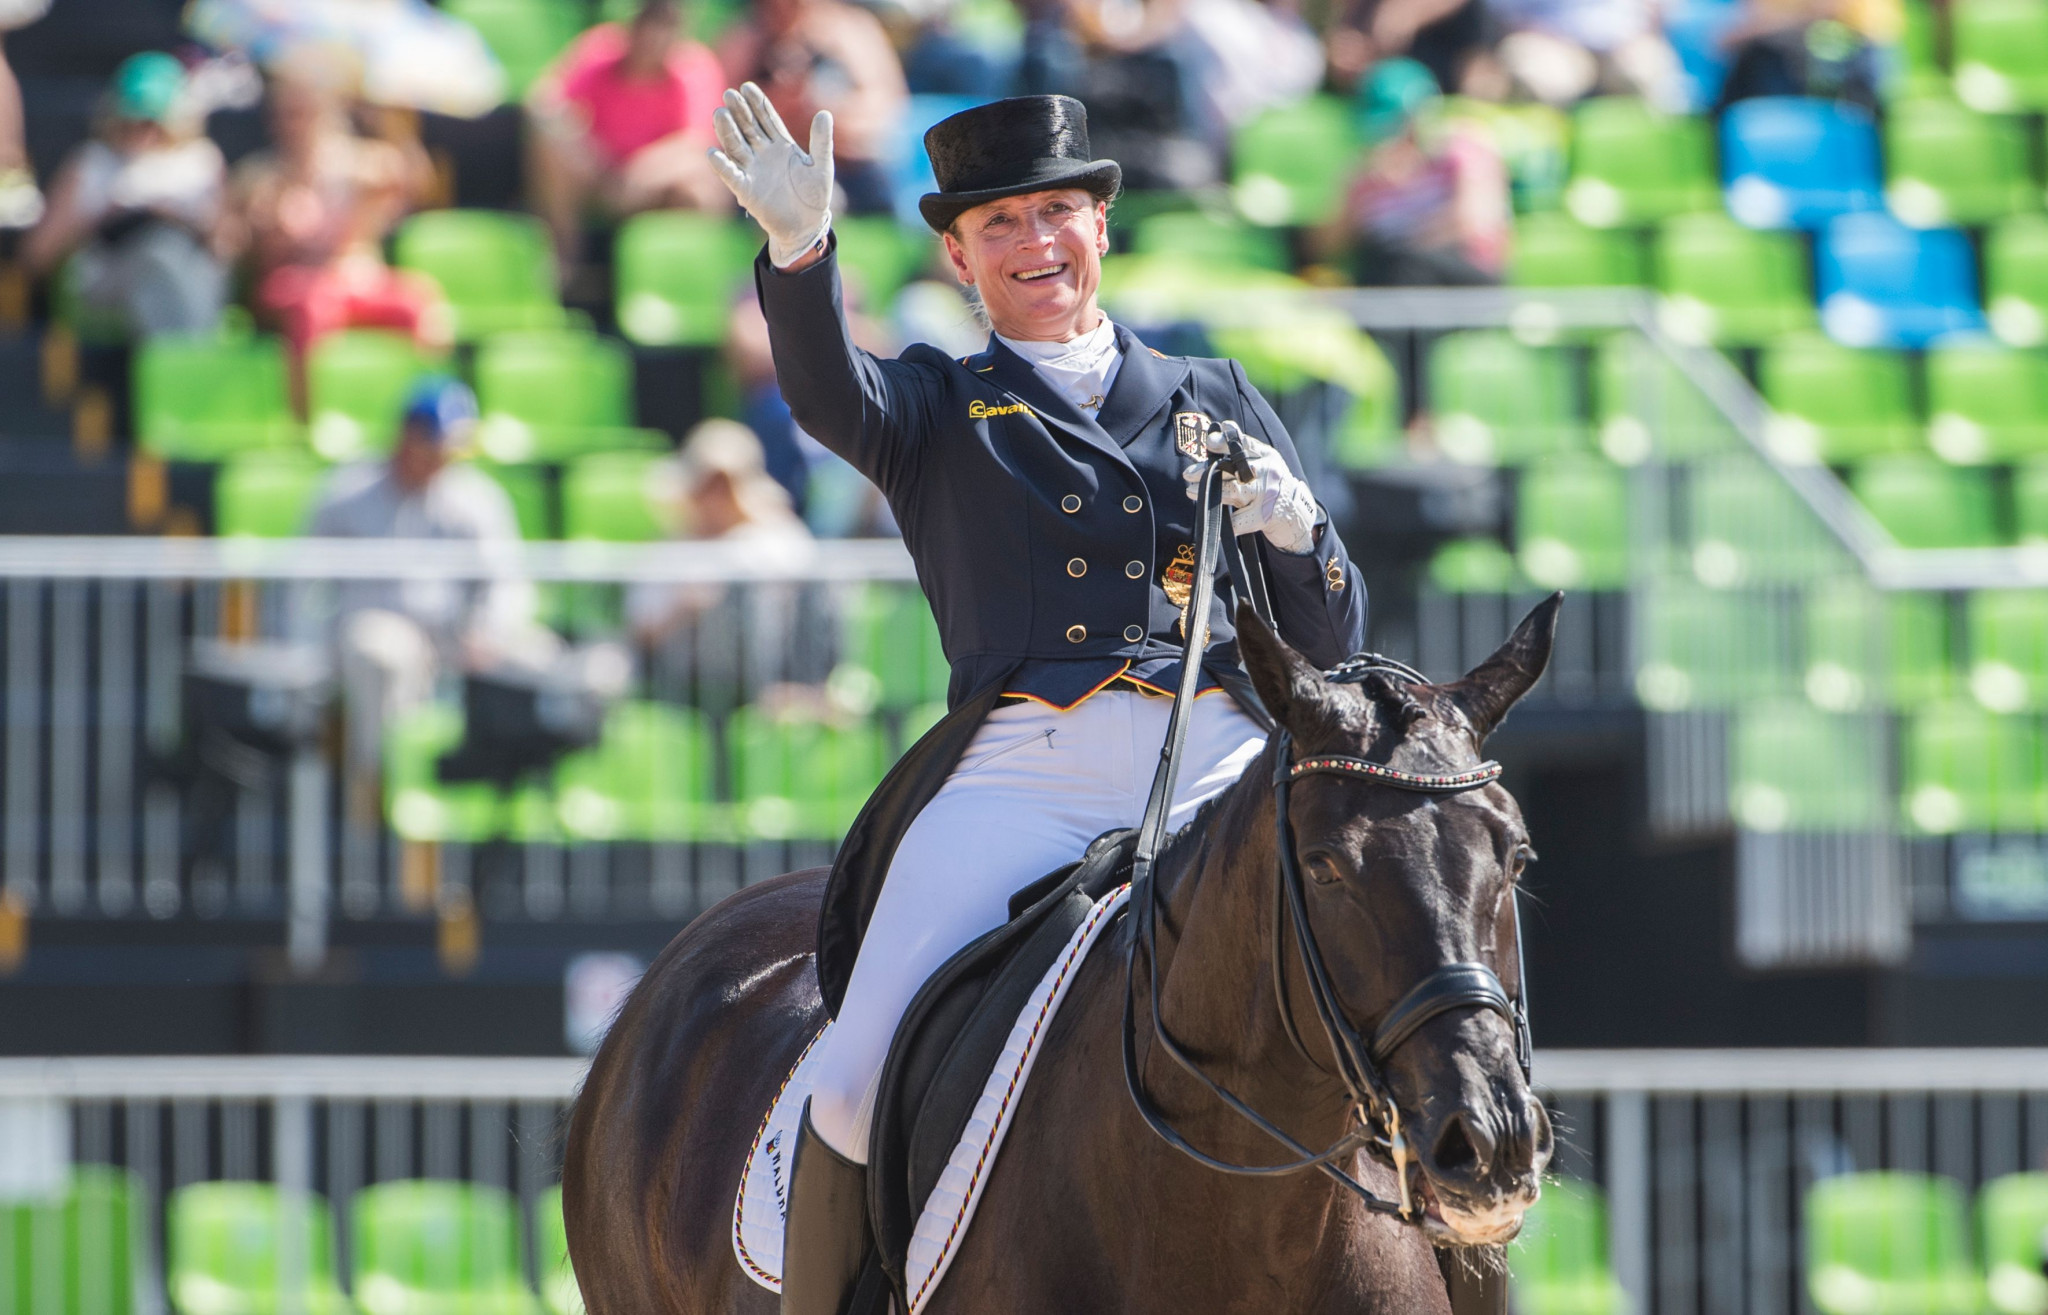 Werth wins in Amsterdam as she chases fourth consecutive FEI Dressage World Cup crown